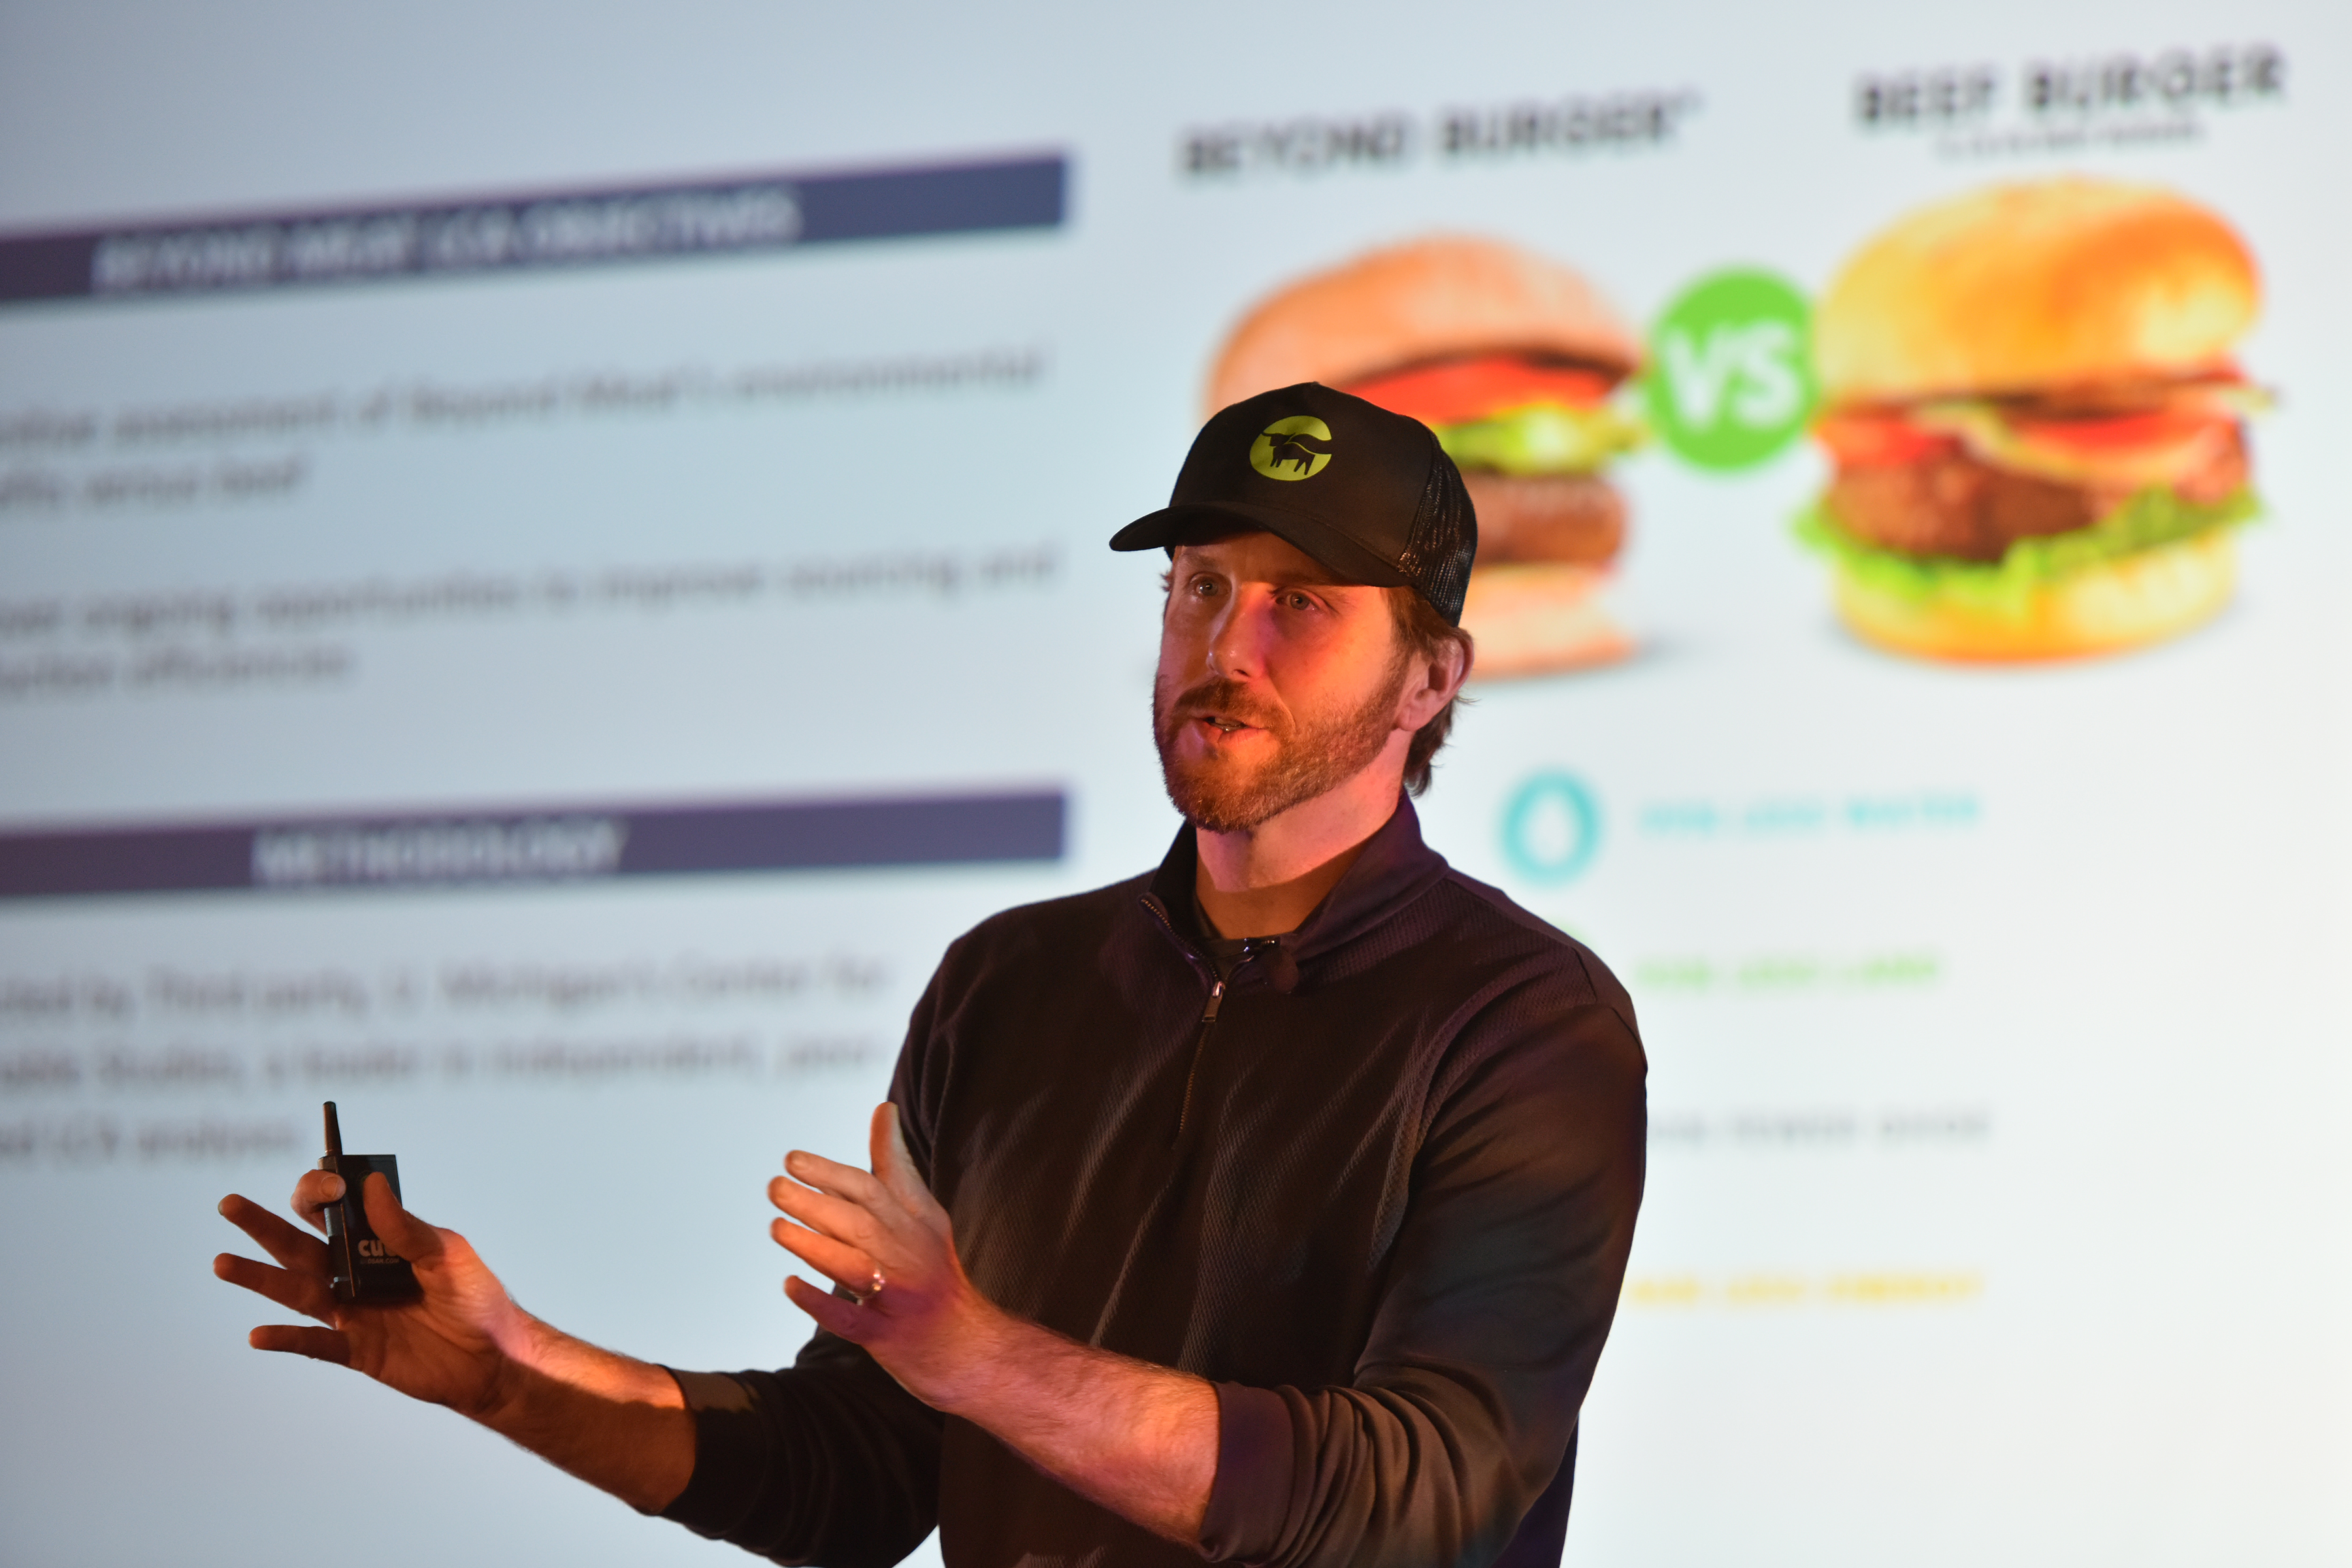 Beyond Meat CEO Ethan Brown Previews 'Poultry Space' Entry in 2020